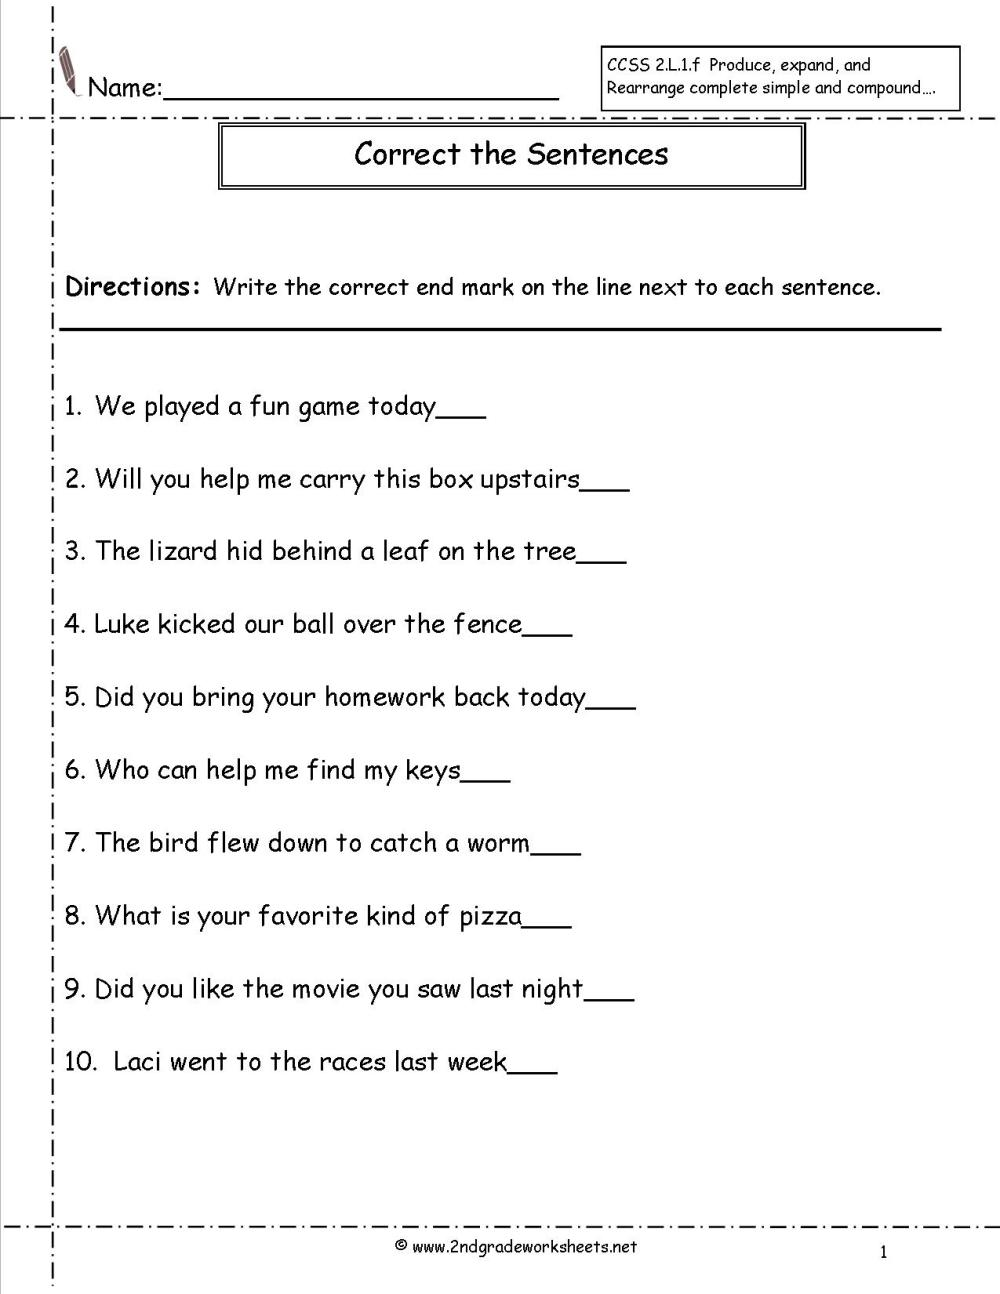 medium resolution of Types Of Sentences Worksheets Grade 2   Printable Worksheets and Activities  for Teachers